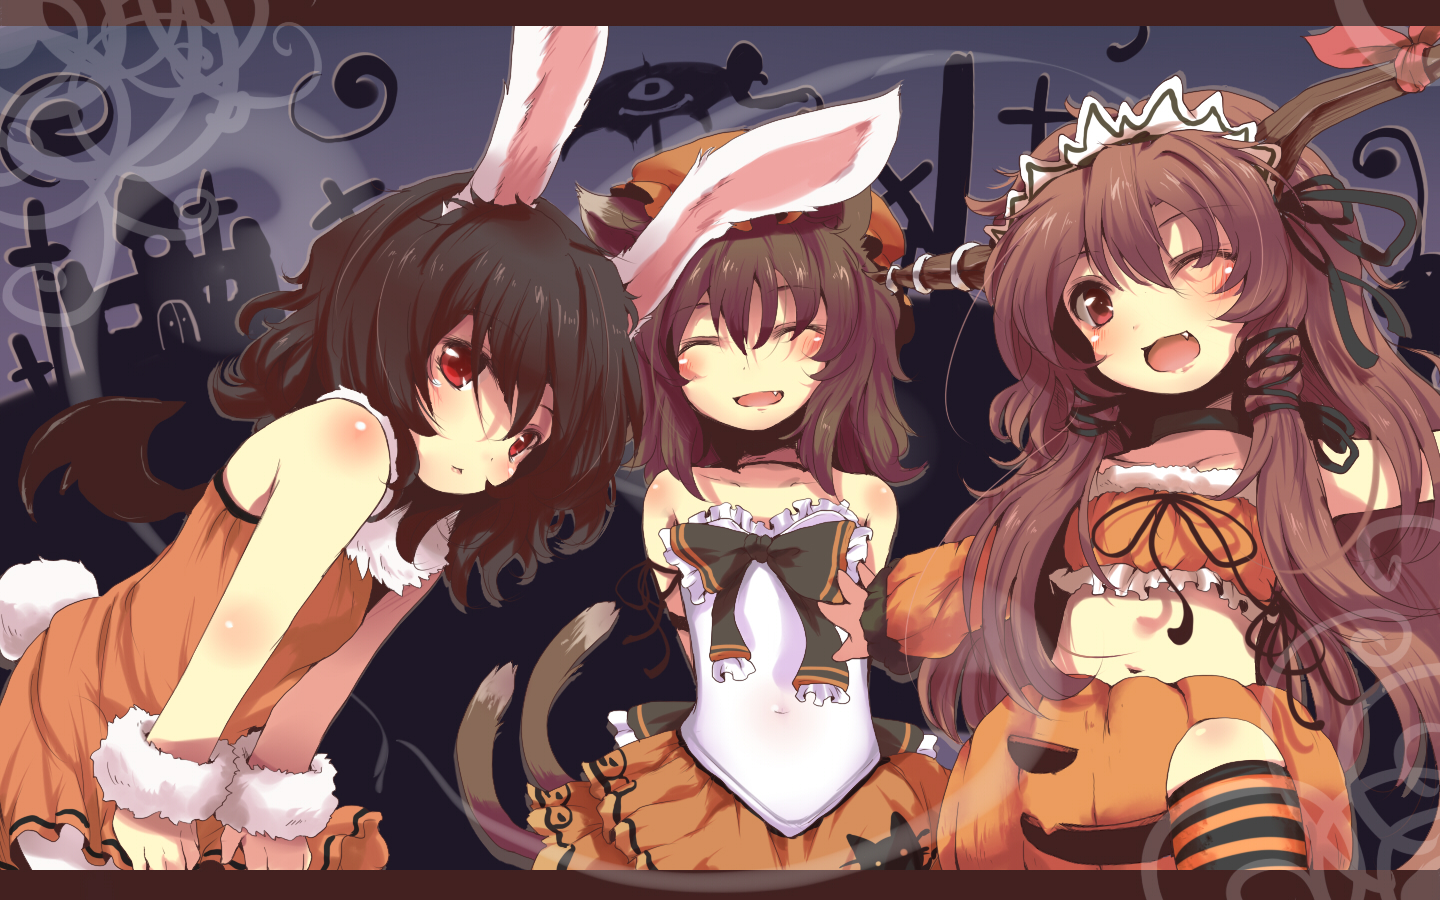 Anime Characters For Halloween : Anime halloween girl wallpaper hd area